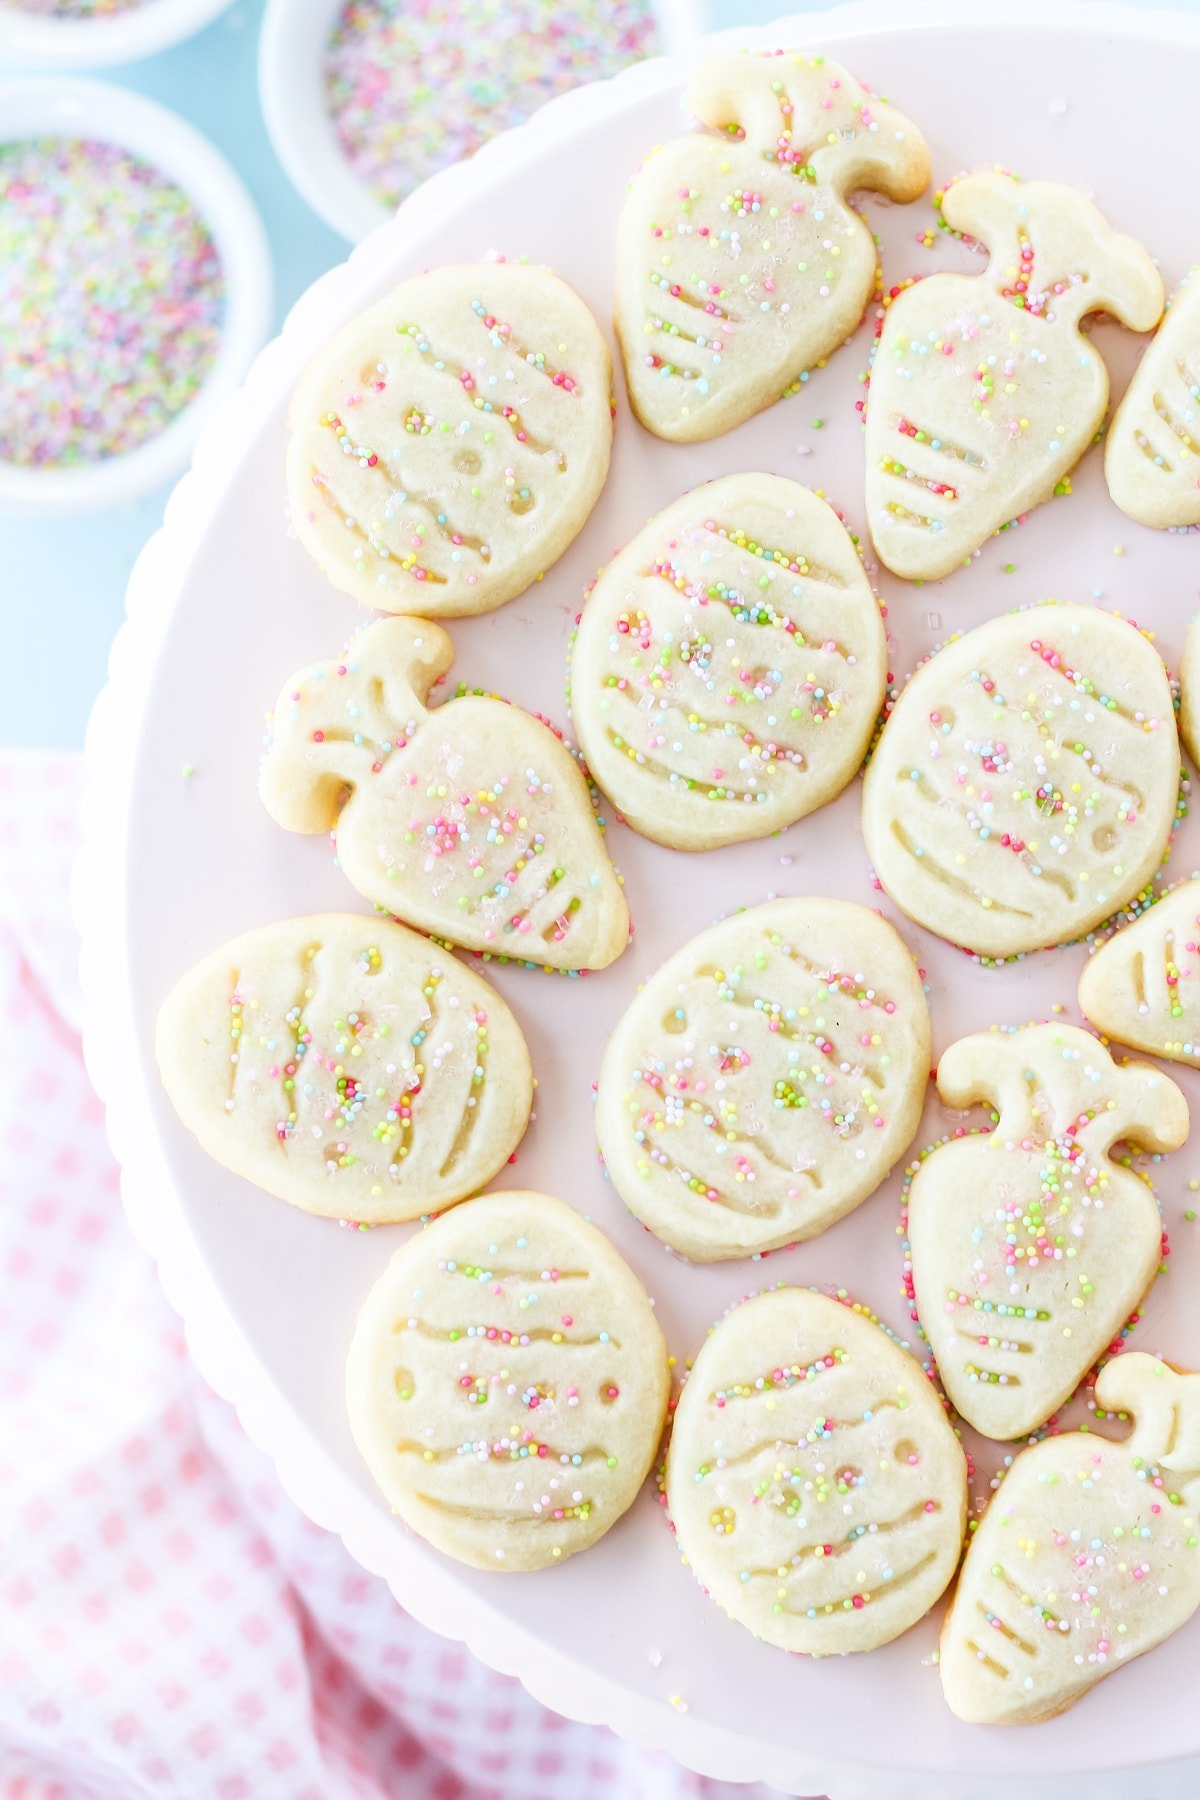 a pink cake plate full of shortbread cut out cookies in the shapes of Easter eggs and carrots. in the background are small bowls of pastel colour sprinkles and a pink checked napkin